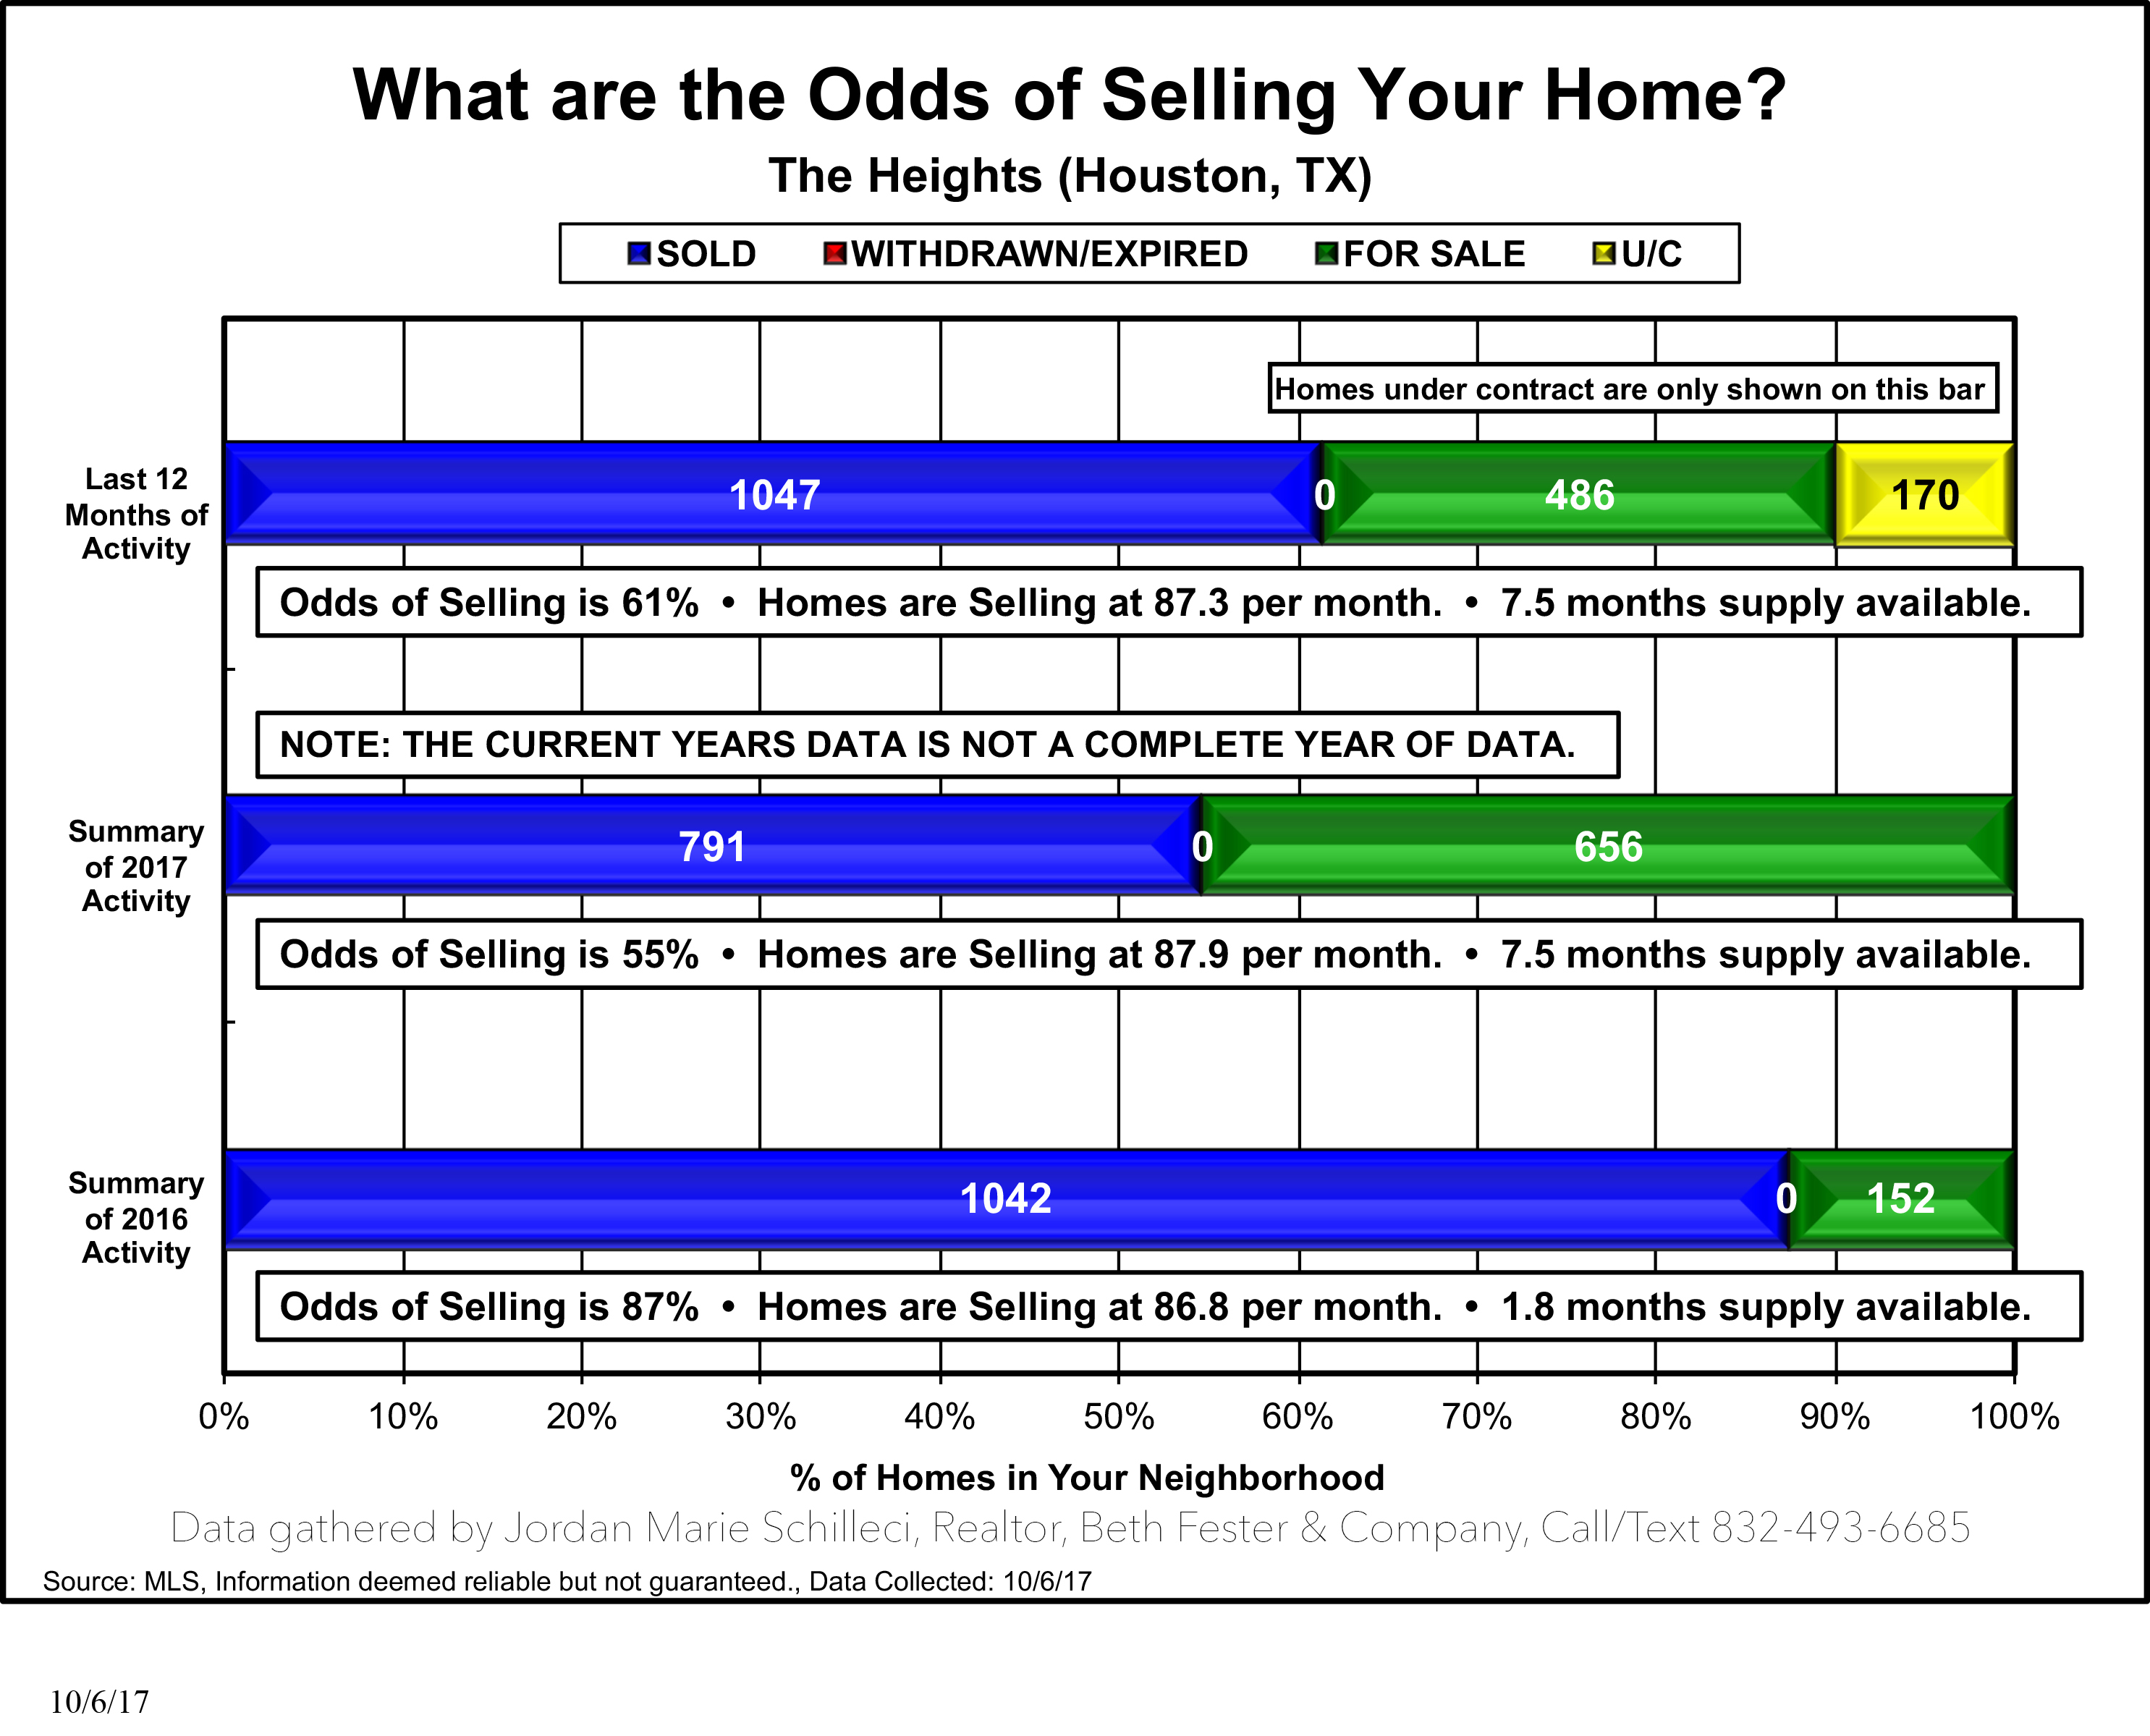 The Heights - What are the odds of selling your home?